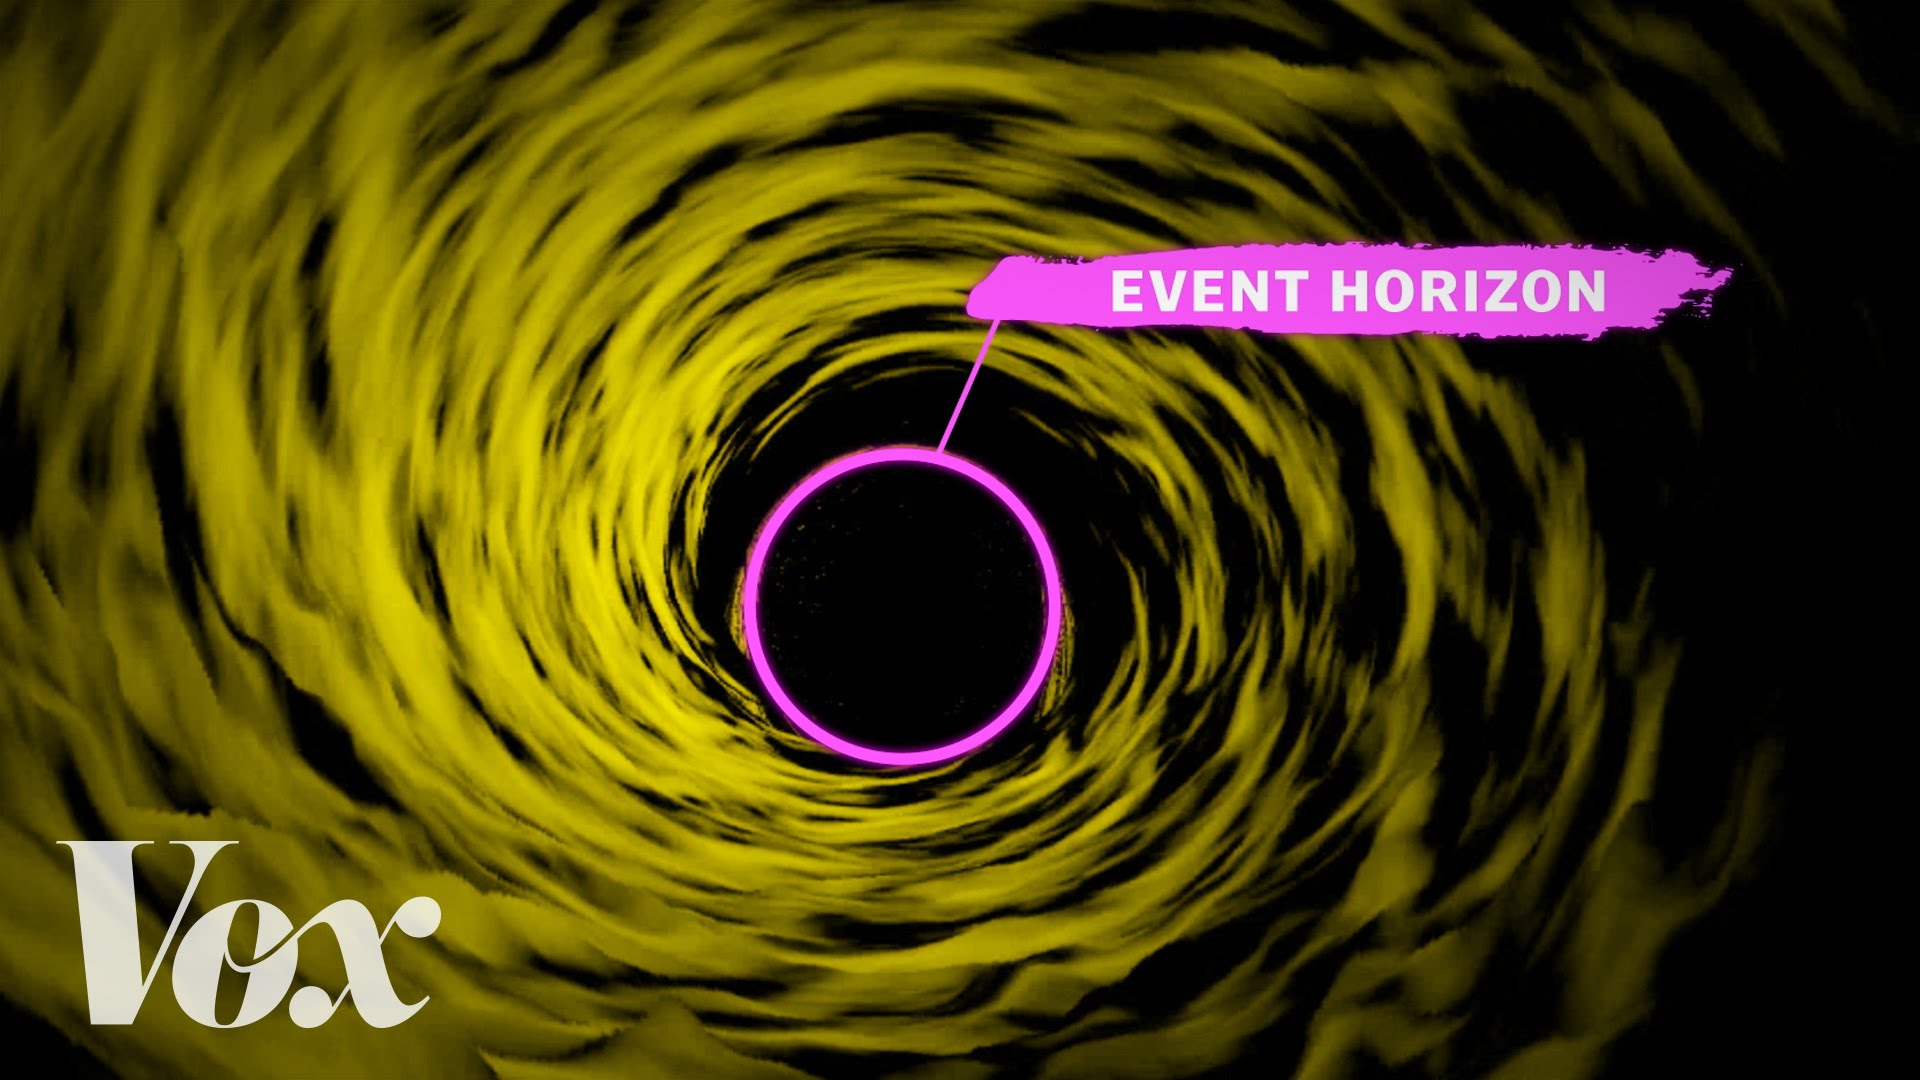 Why every picture of a black hole is an illustration